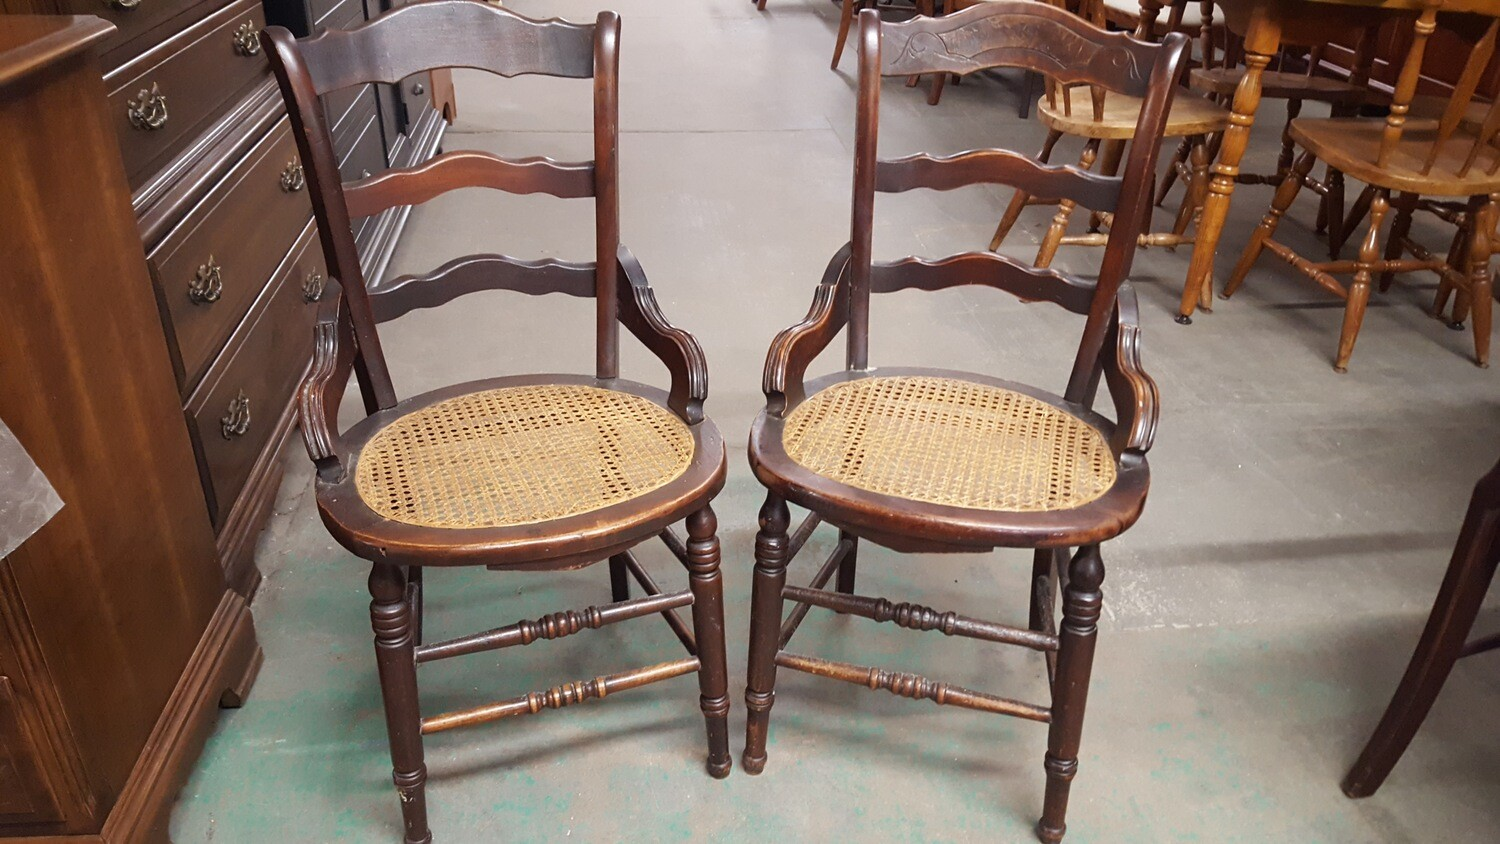 Antique Chairs, caned seat, pair (p)